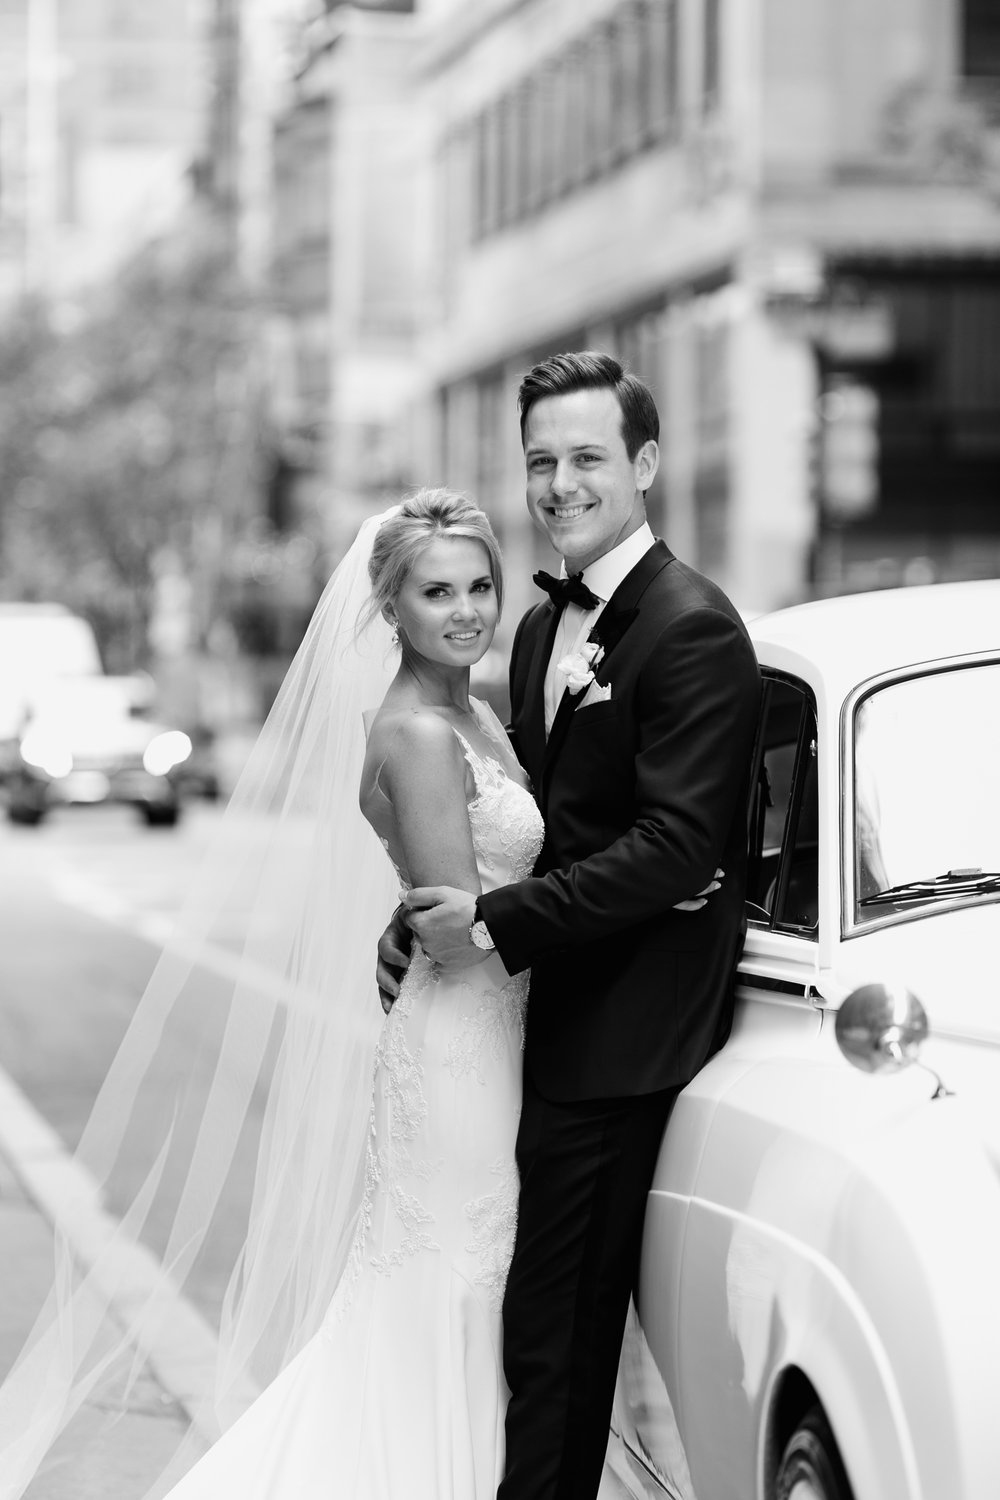 photography-wedding-weddings-natural-candid-union league-philadelphia-black tie-city hall-broad street-editorial-modern-fine-art-21.JPG